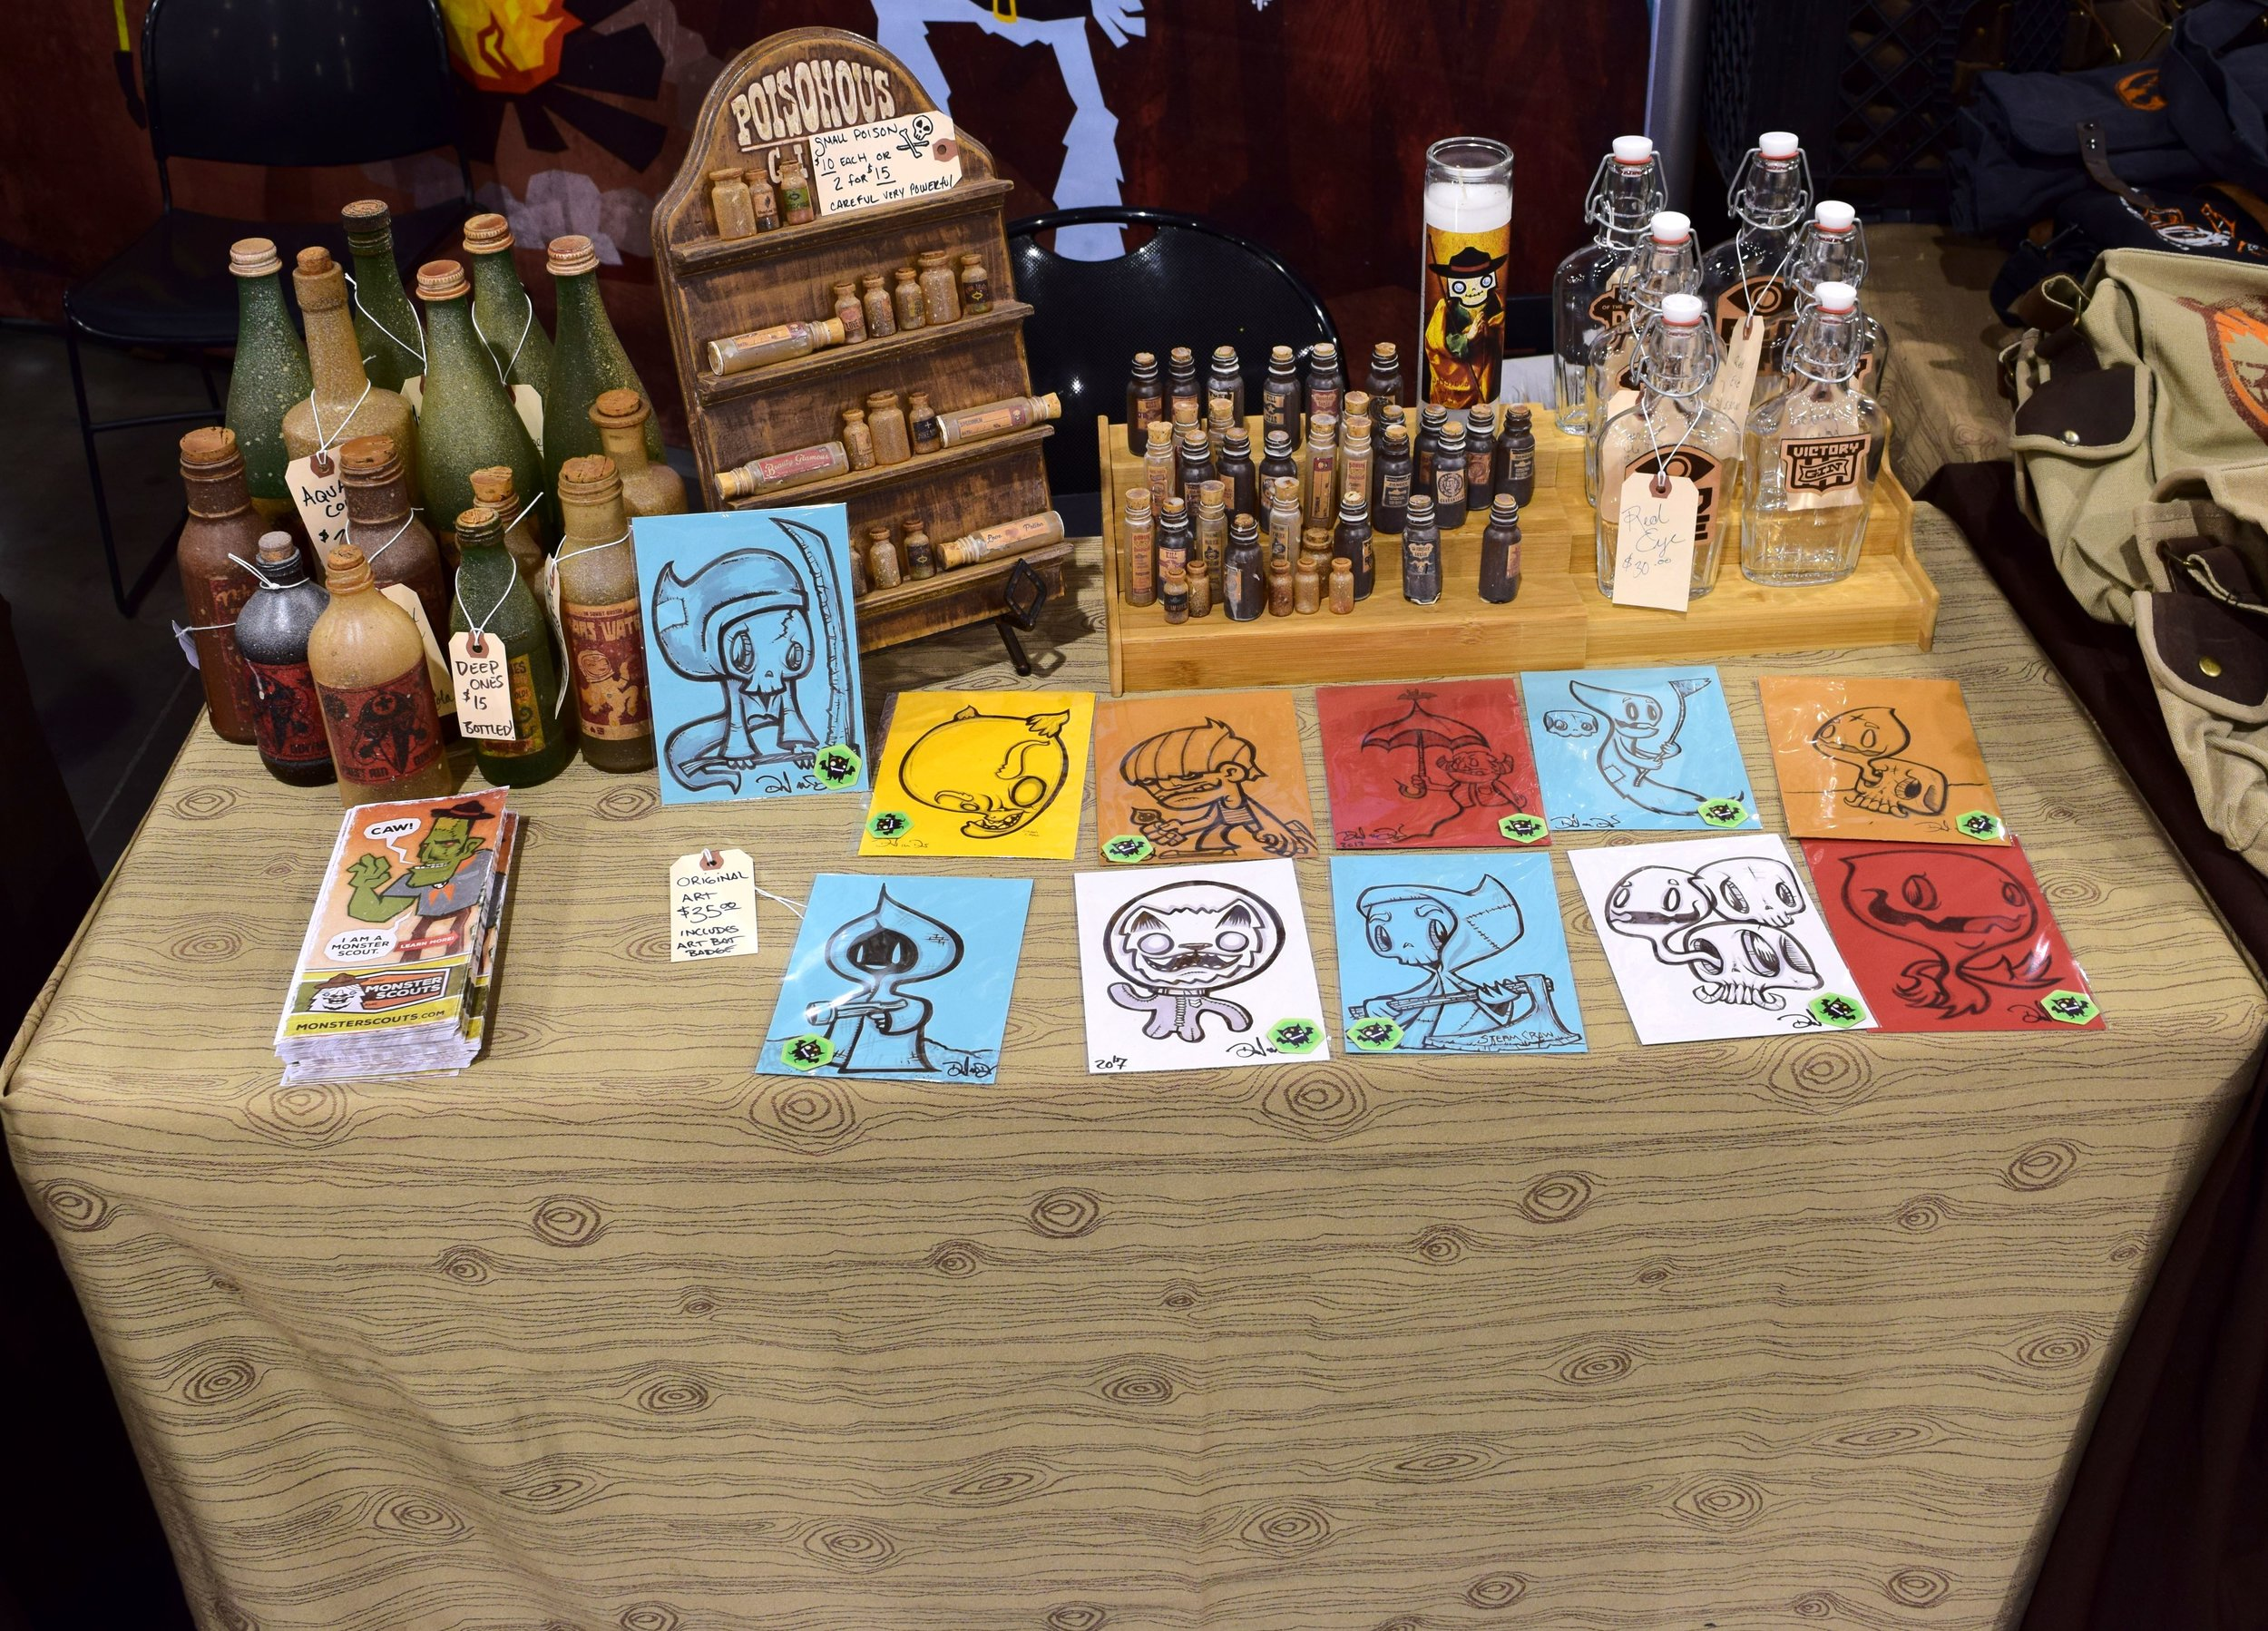 Original art and potion bottles from Steam Crow at Phoenix Comic Con 2017.